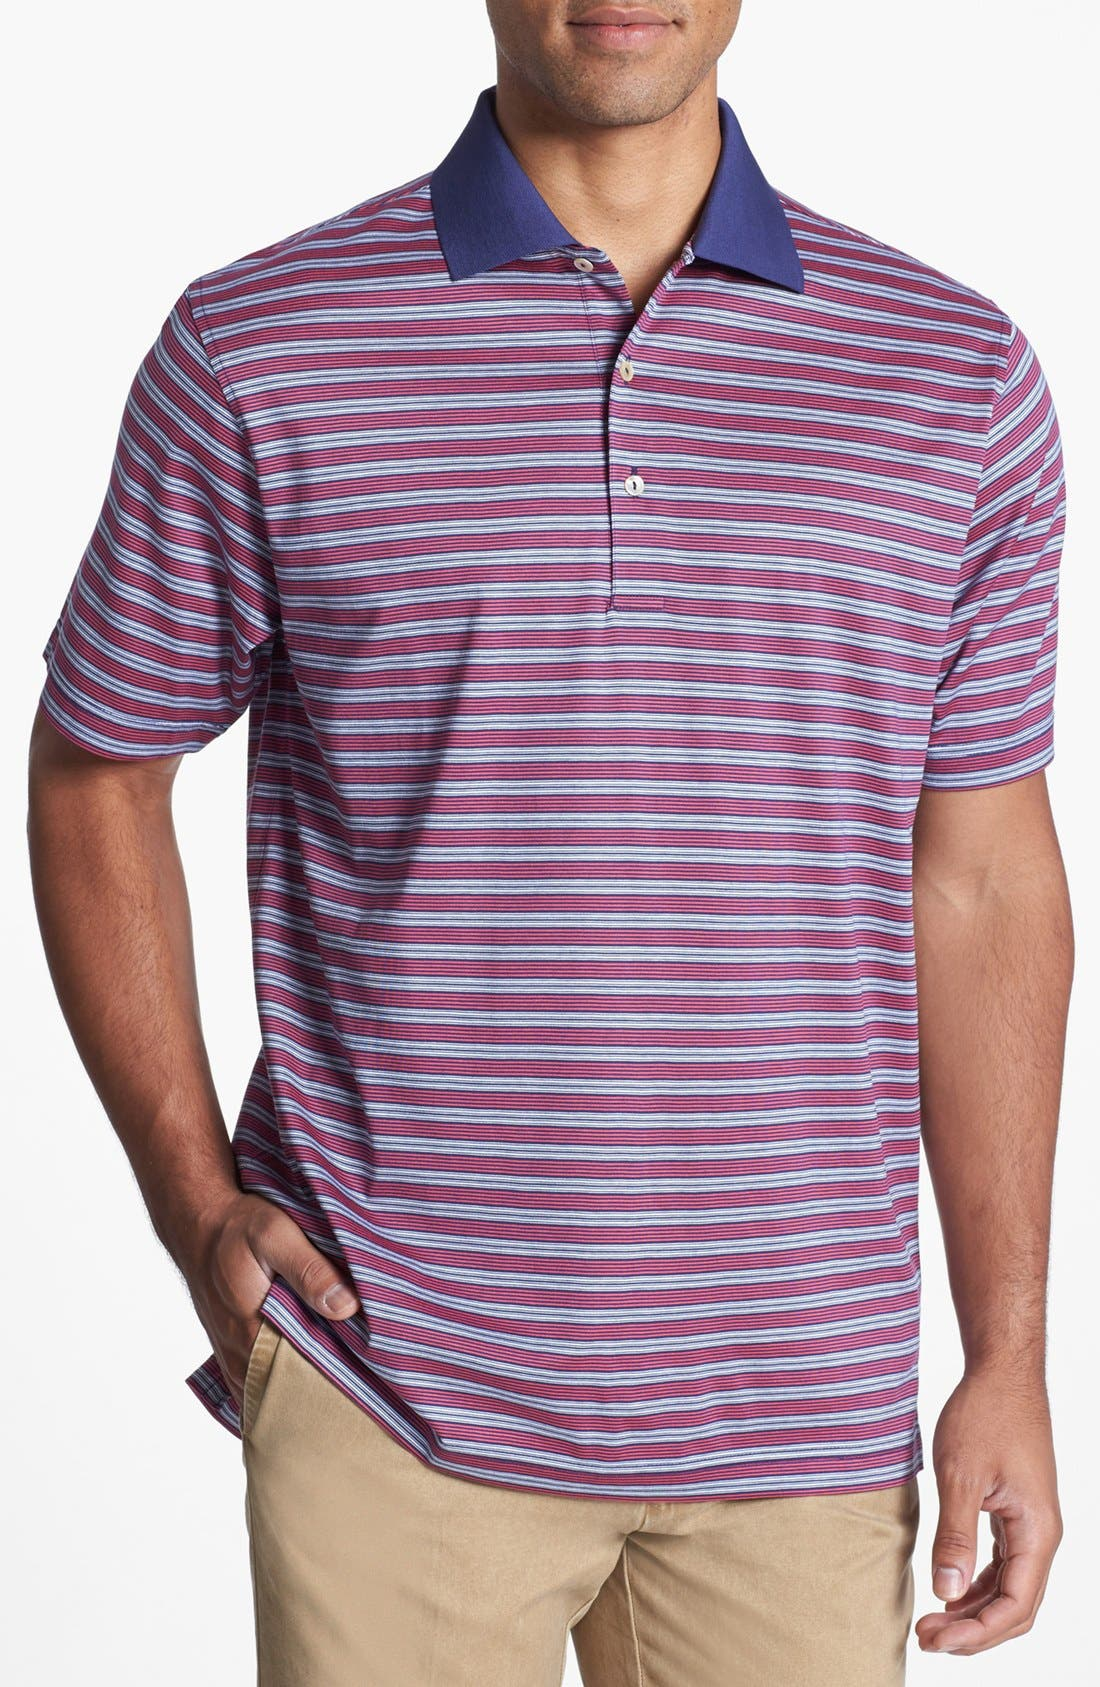 Main Image - Peter Millar 'Laddie Stripe' Polo